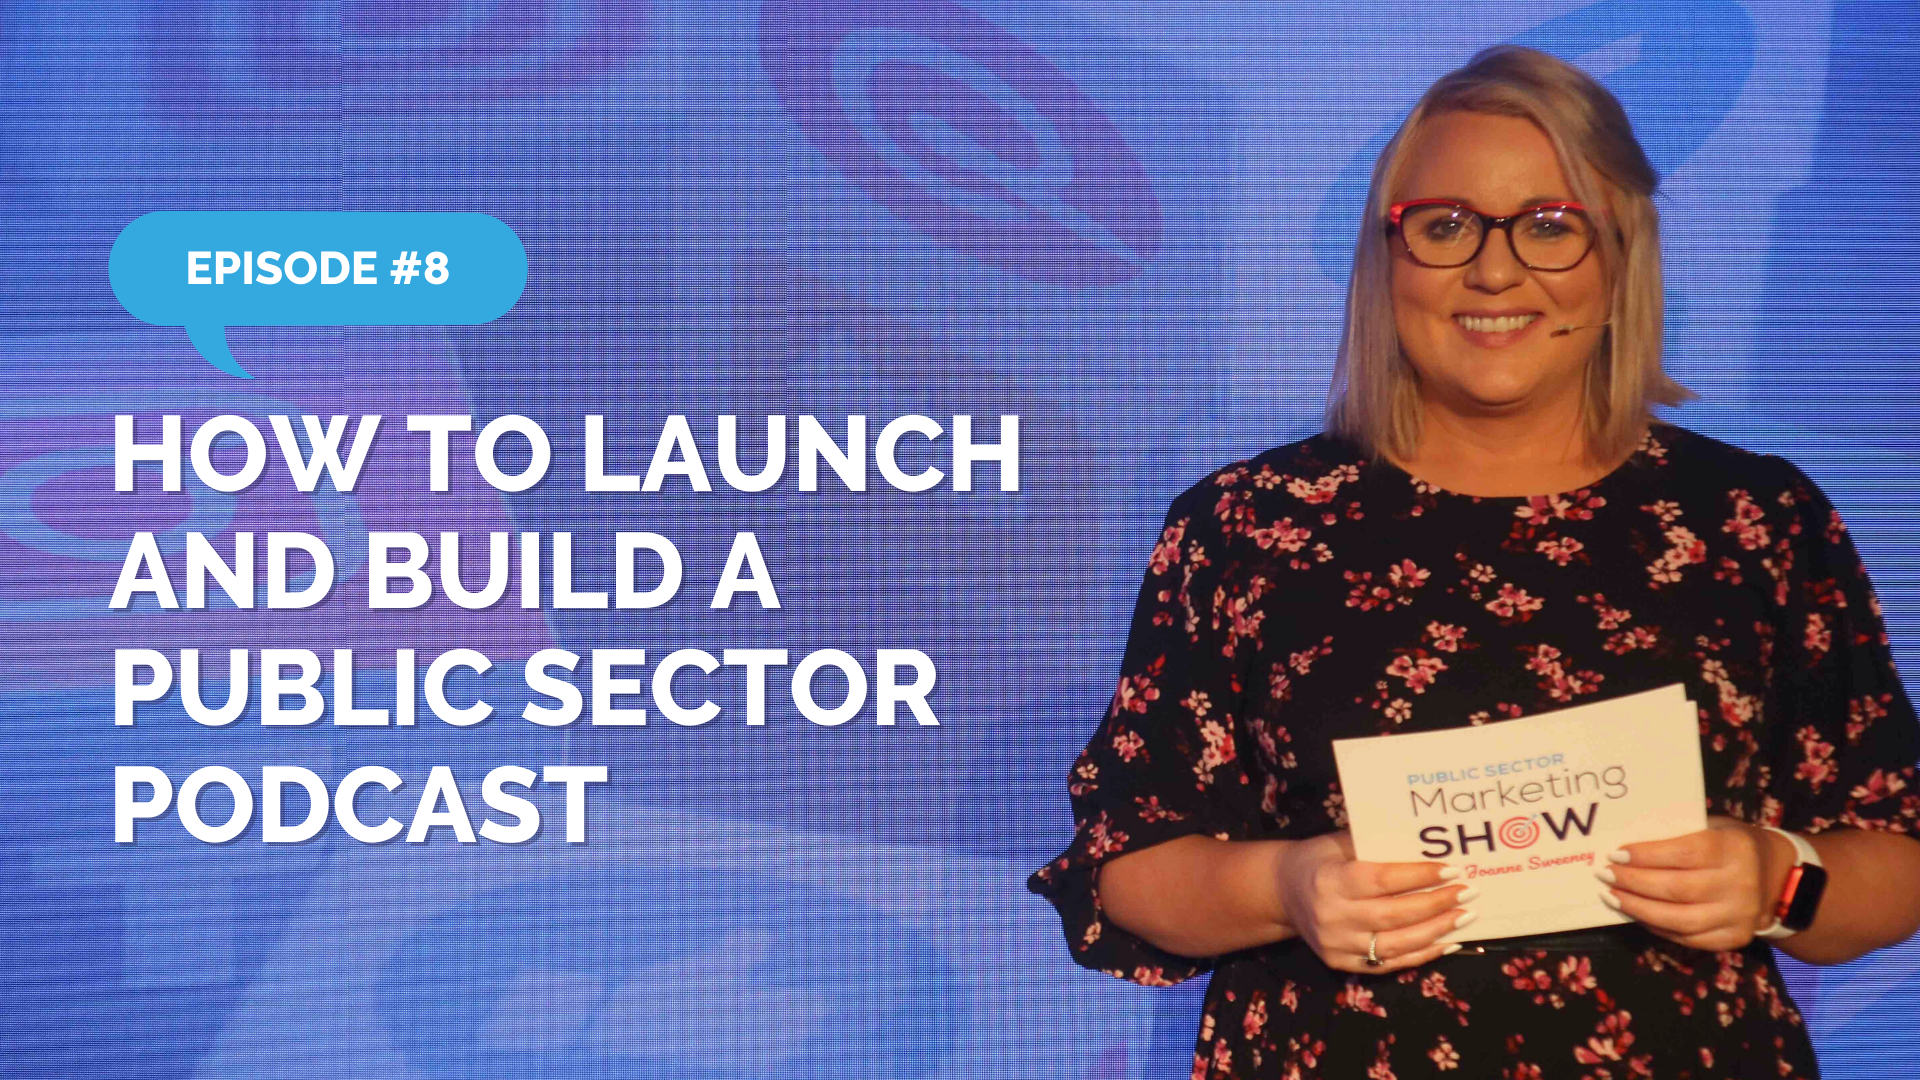 Episode 8 - How to Launch and Build a Public Sector Podcast